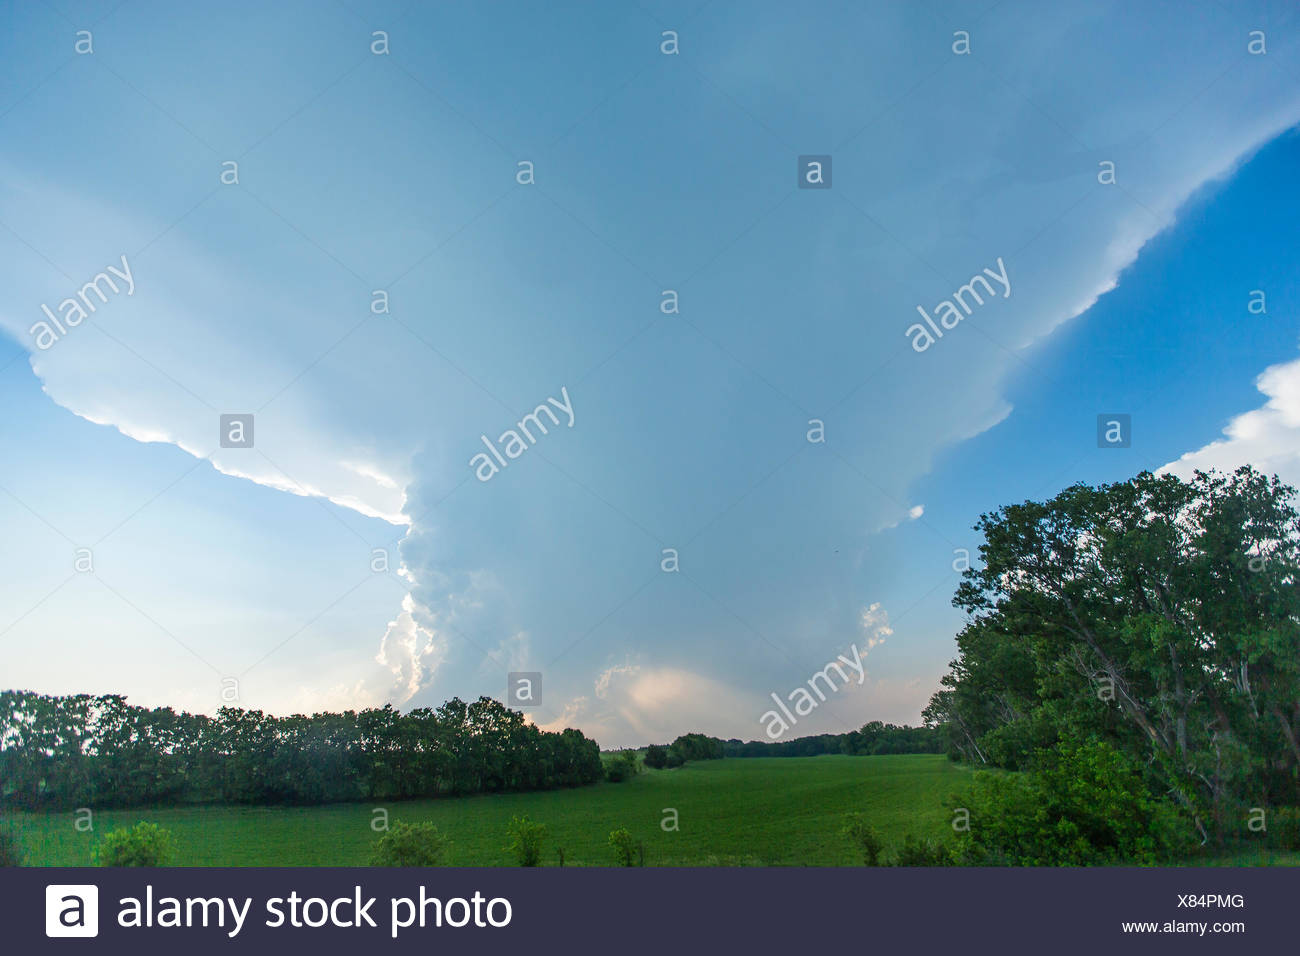 A developing low precipitation super cell thunderstorm in Tornado Alley. - Stock Image